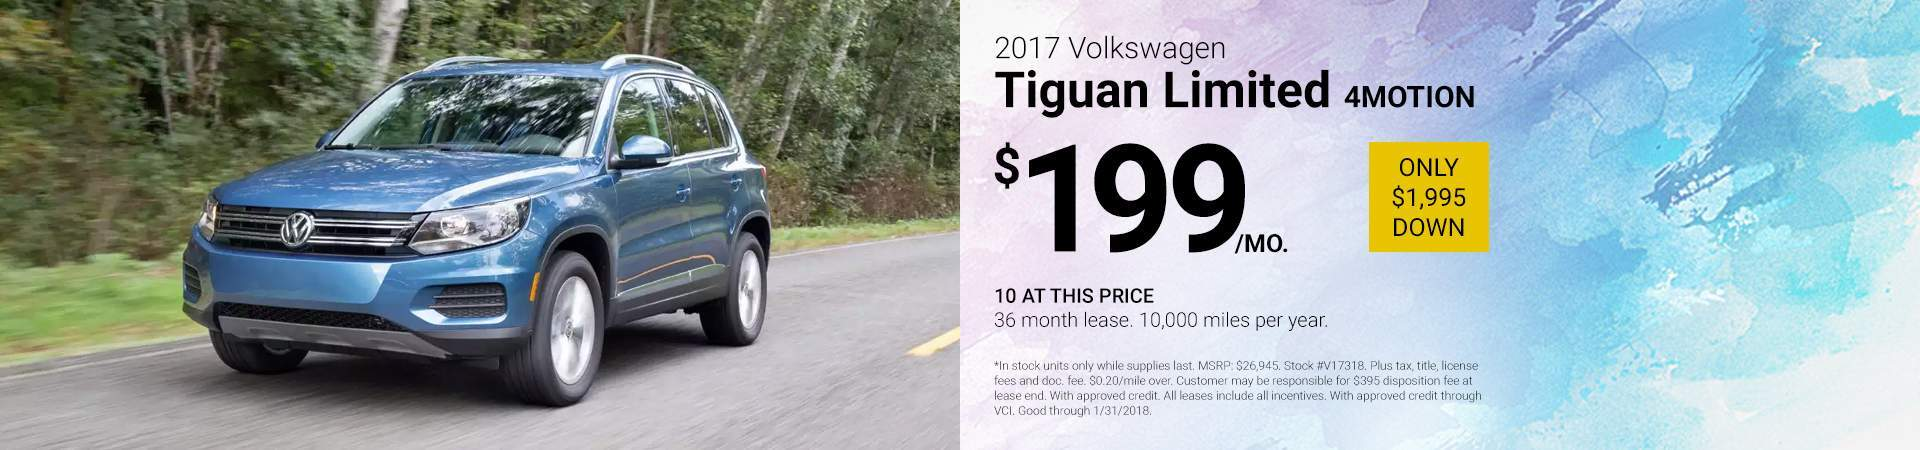 2017 Volkswagen Tiguan Limited LIMITED 2.0T 4MOTION